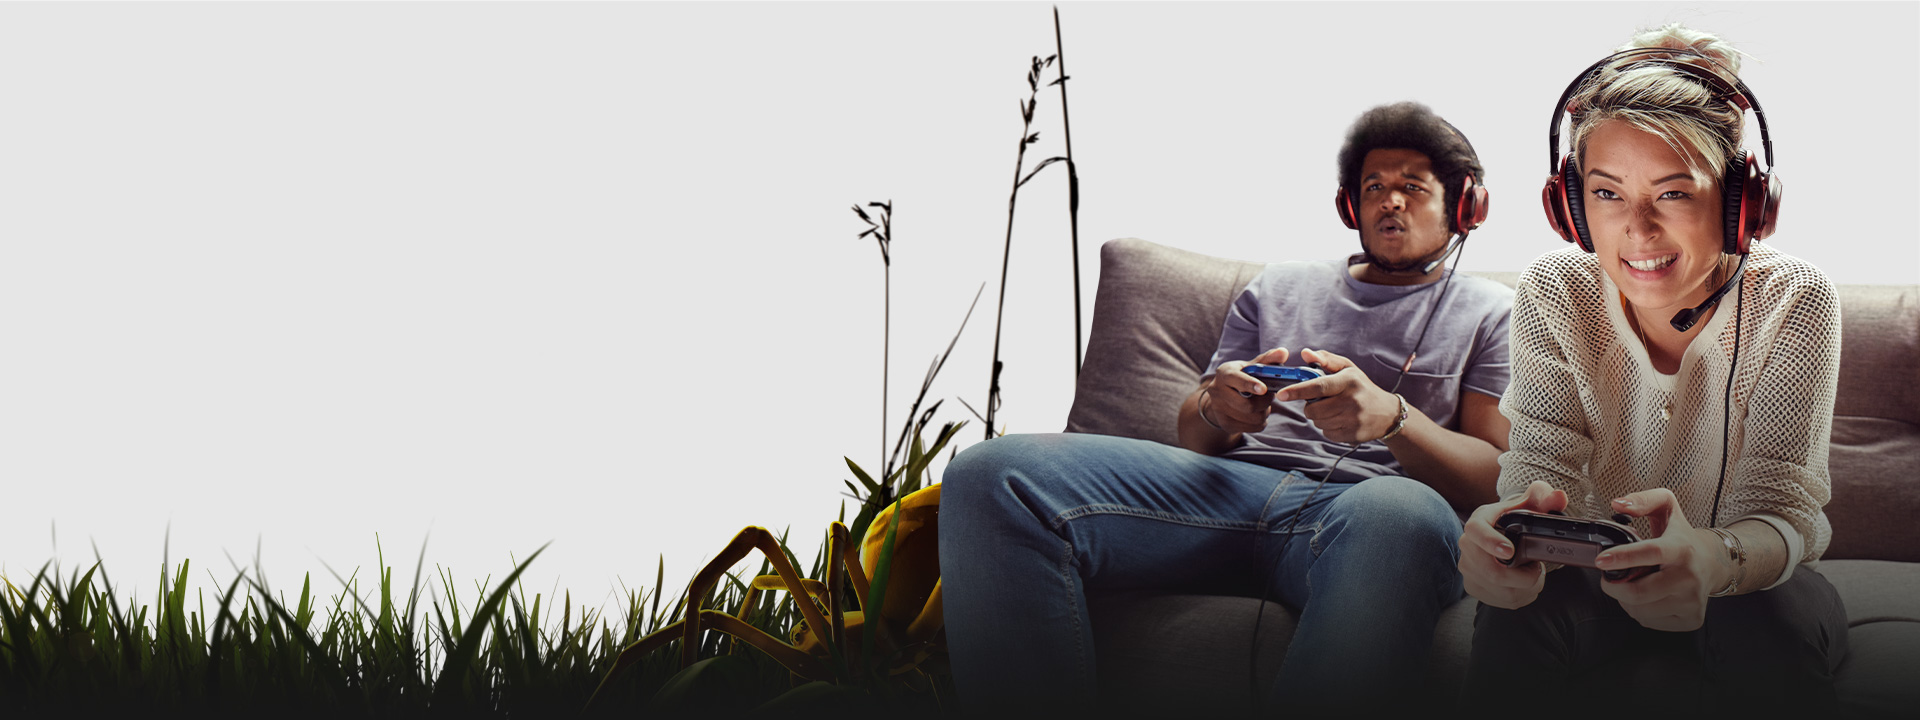 Two gamers sitting on a couch in a grassy scene from Grounded